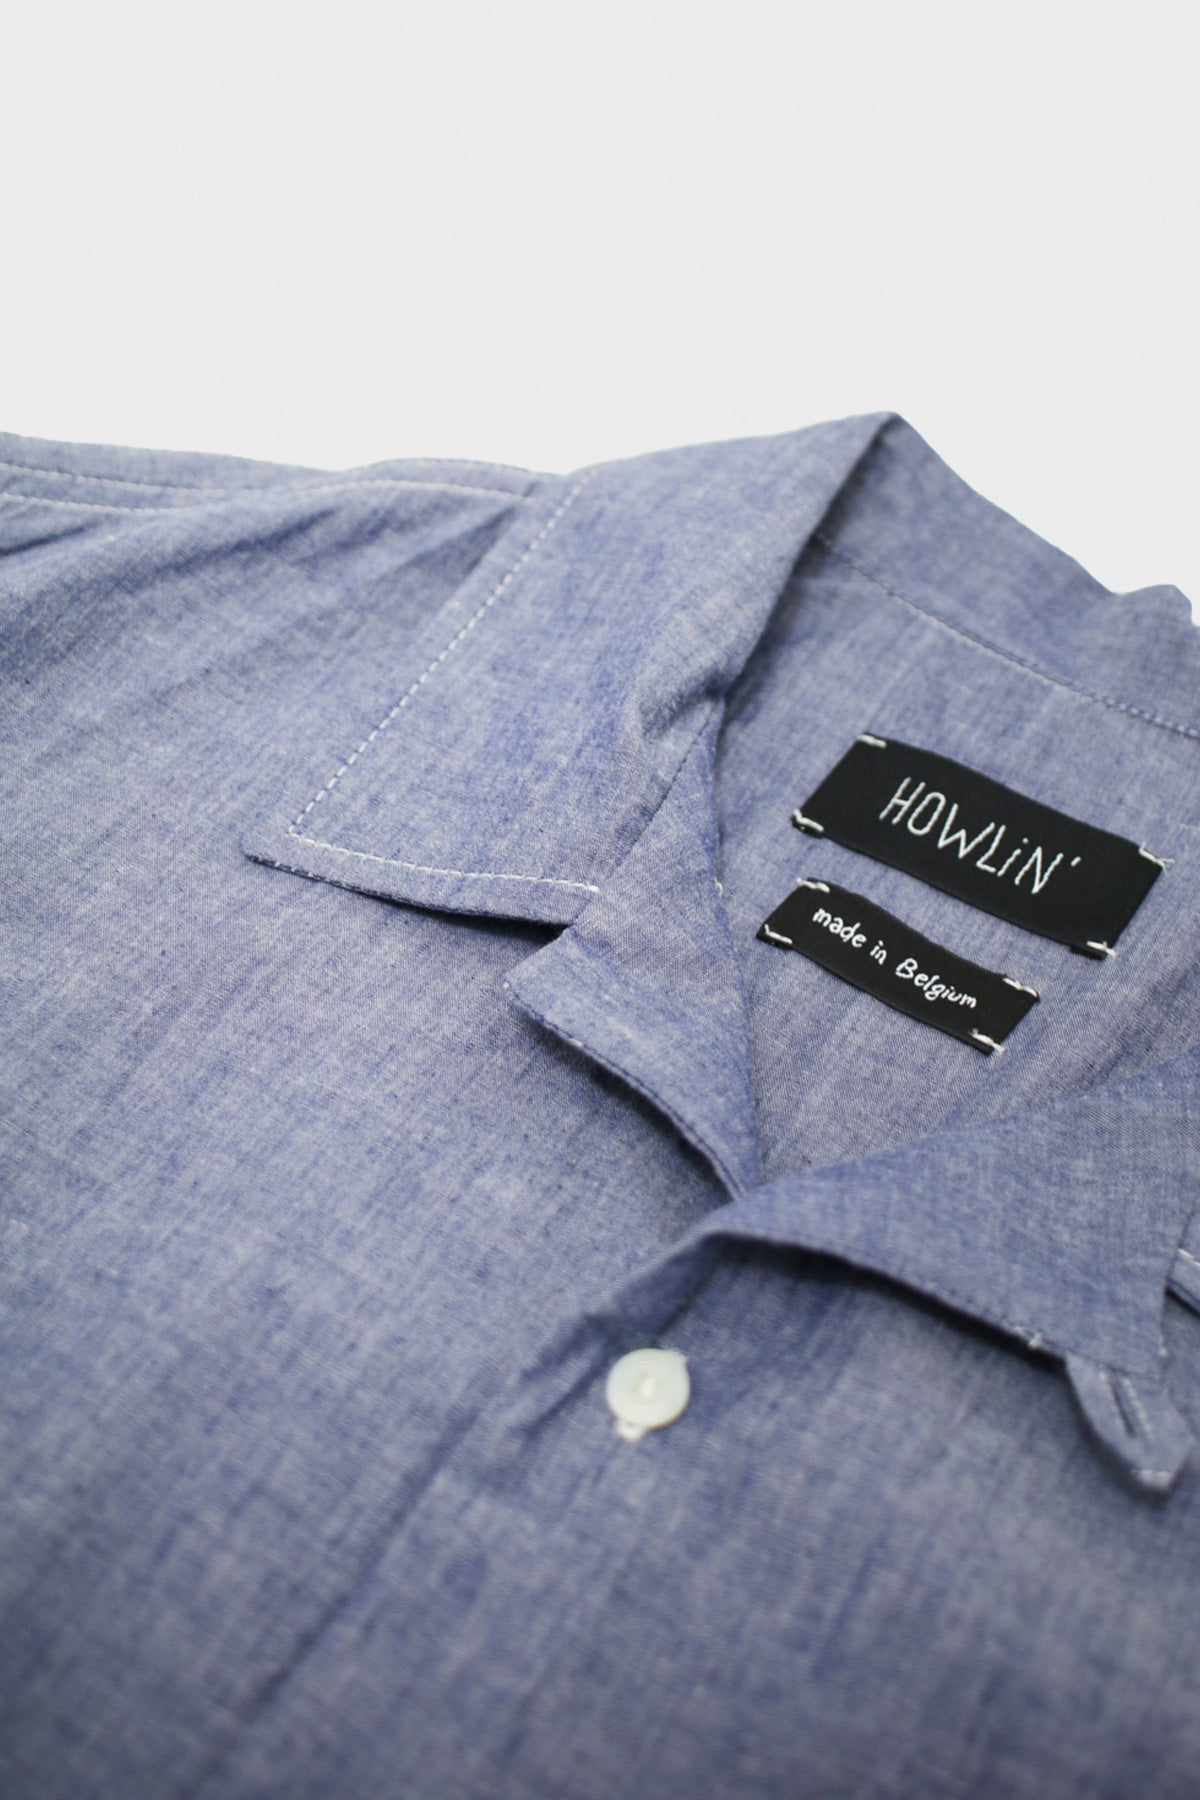 Howlin' - Cocktail Shirt - Chambray Mid Blue - Canoe Club